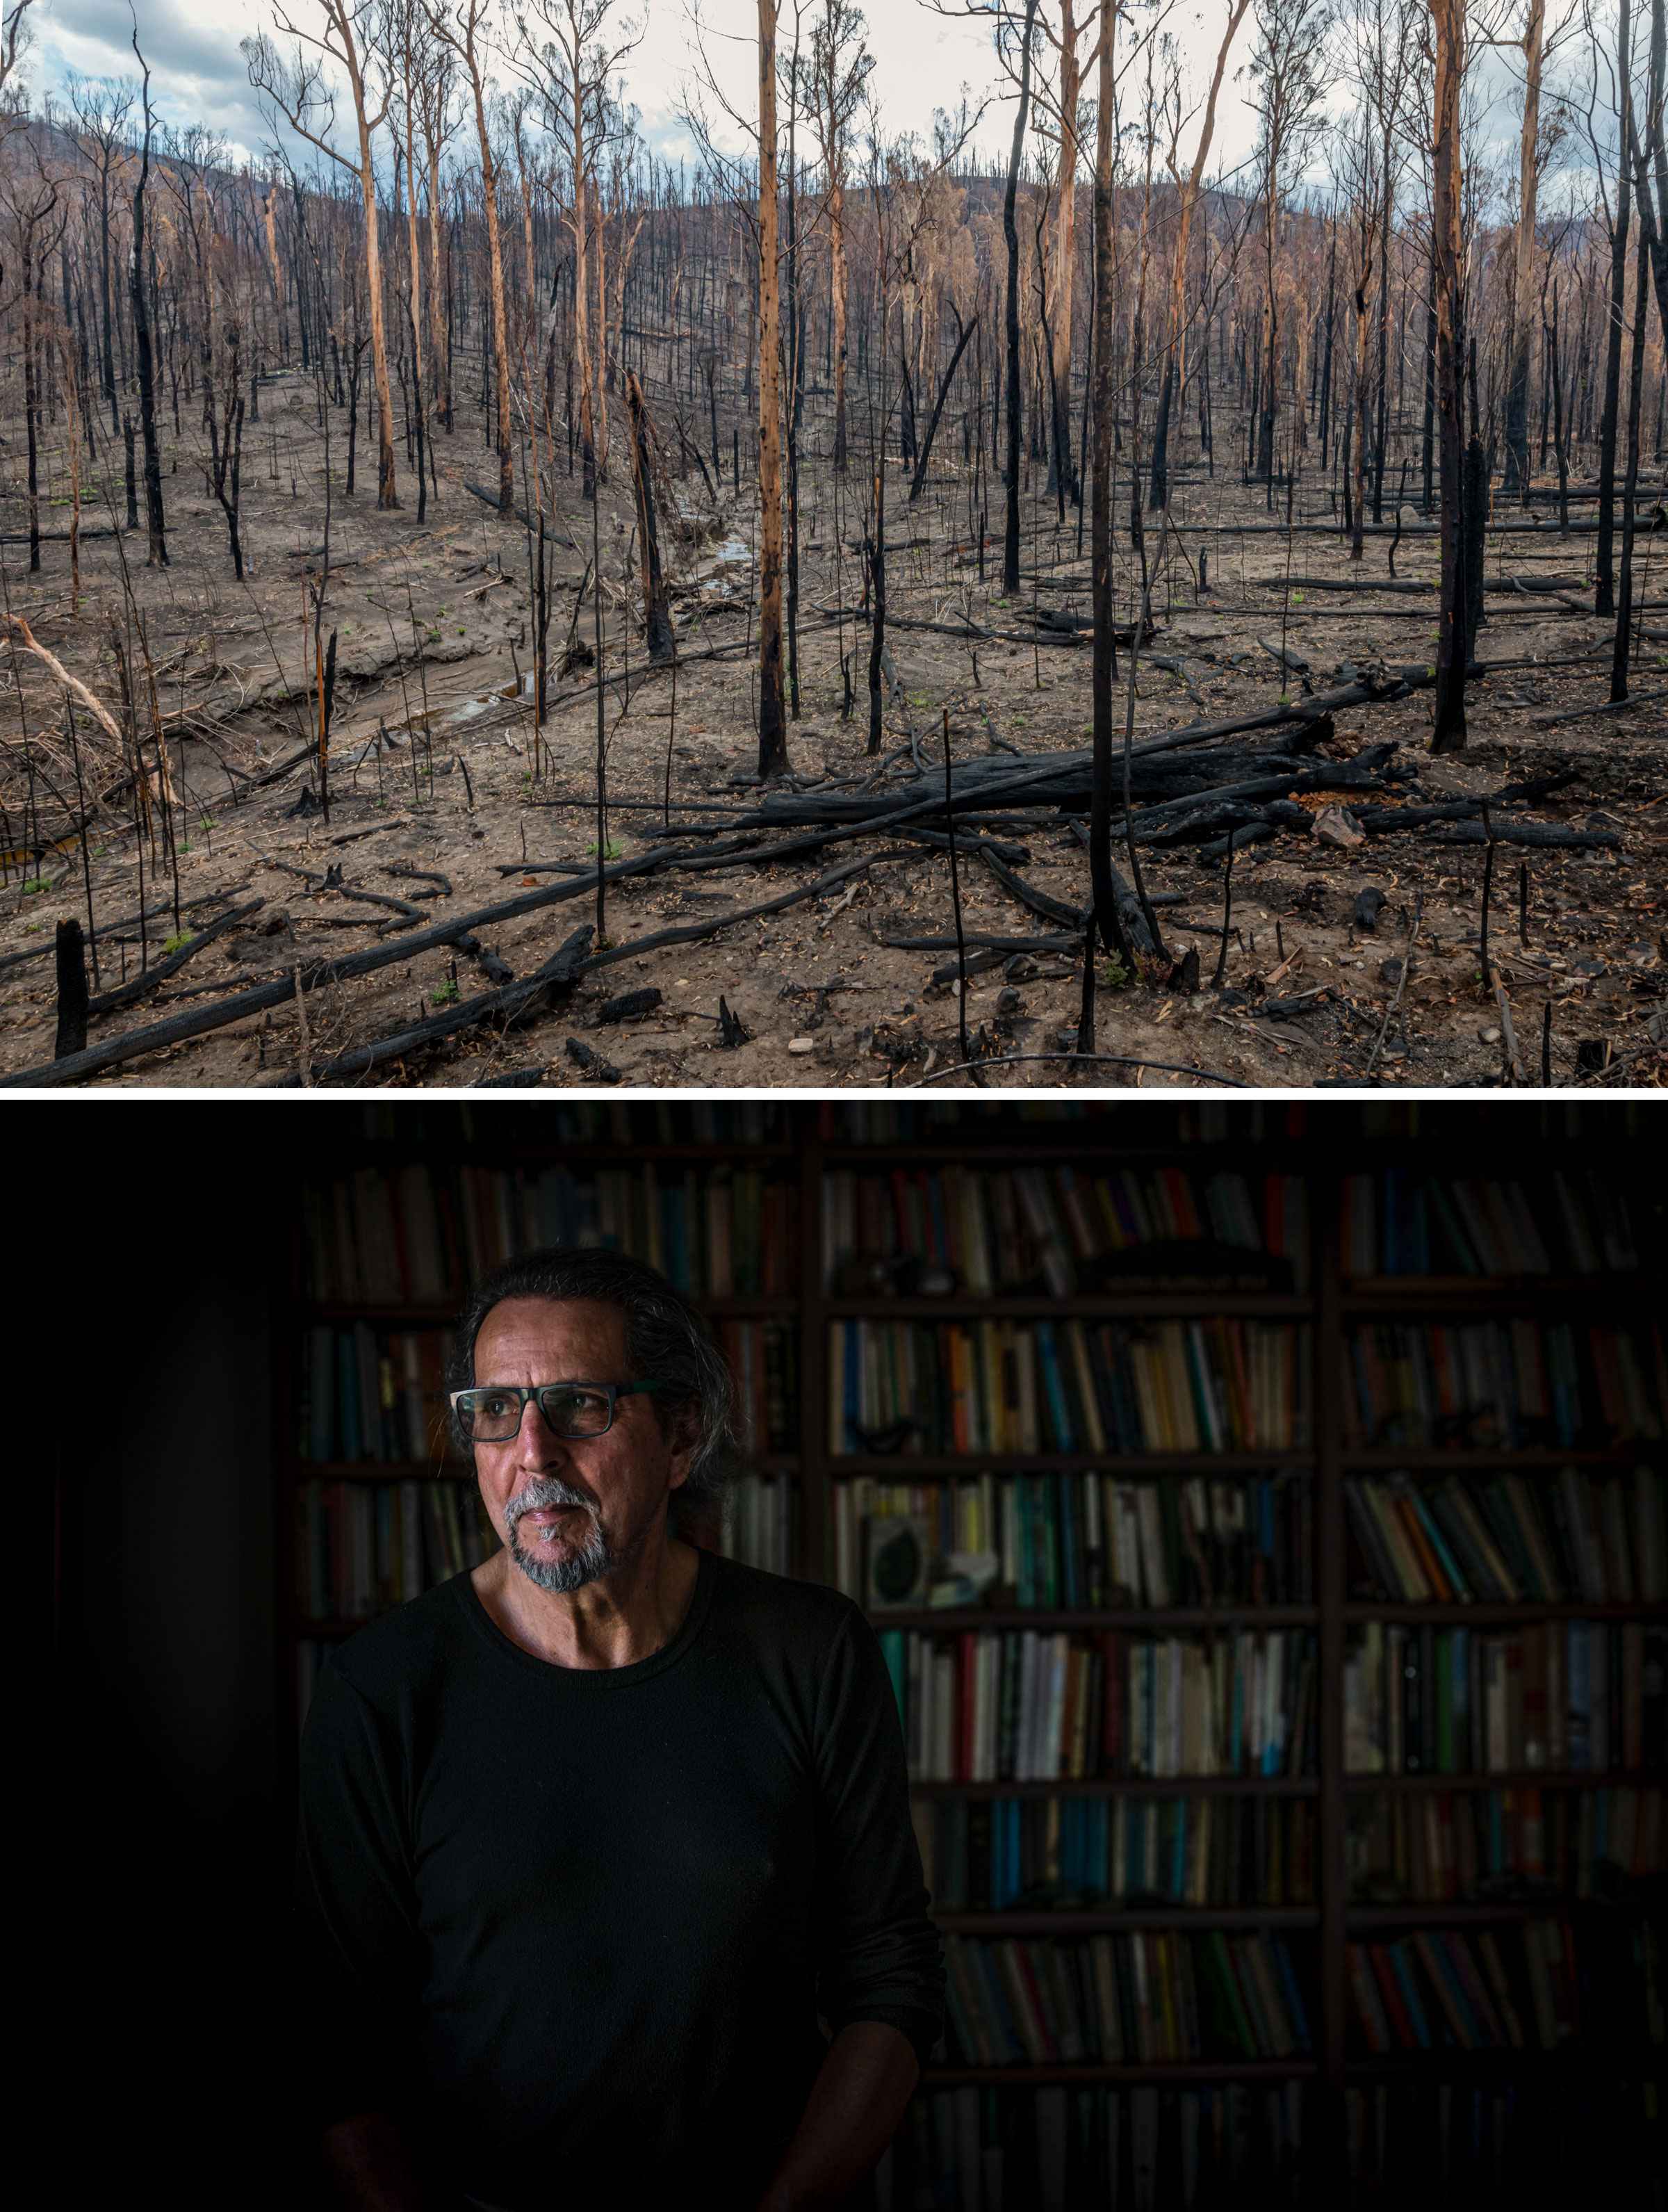 """From top: Bushfires torched gum-tree stands across much of the birds' range last year. Philosopher Glenn Albrecht coined the term """"solastalgia"""" to describe the distress caused by environmental change. Photos: Doug Gimesy"""